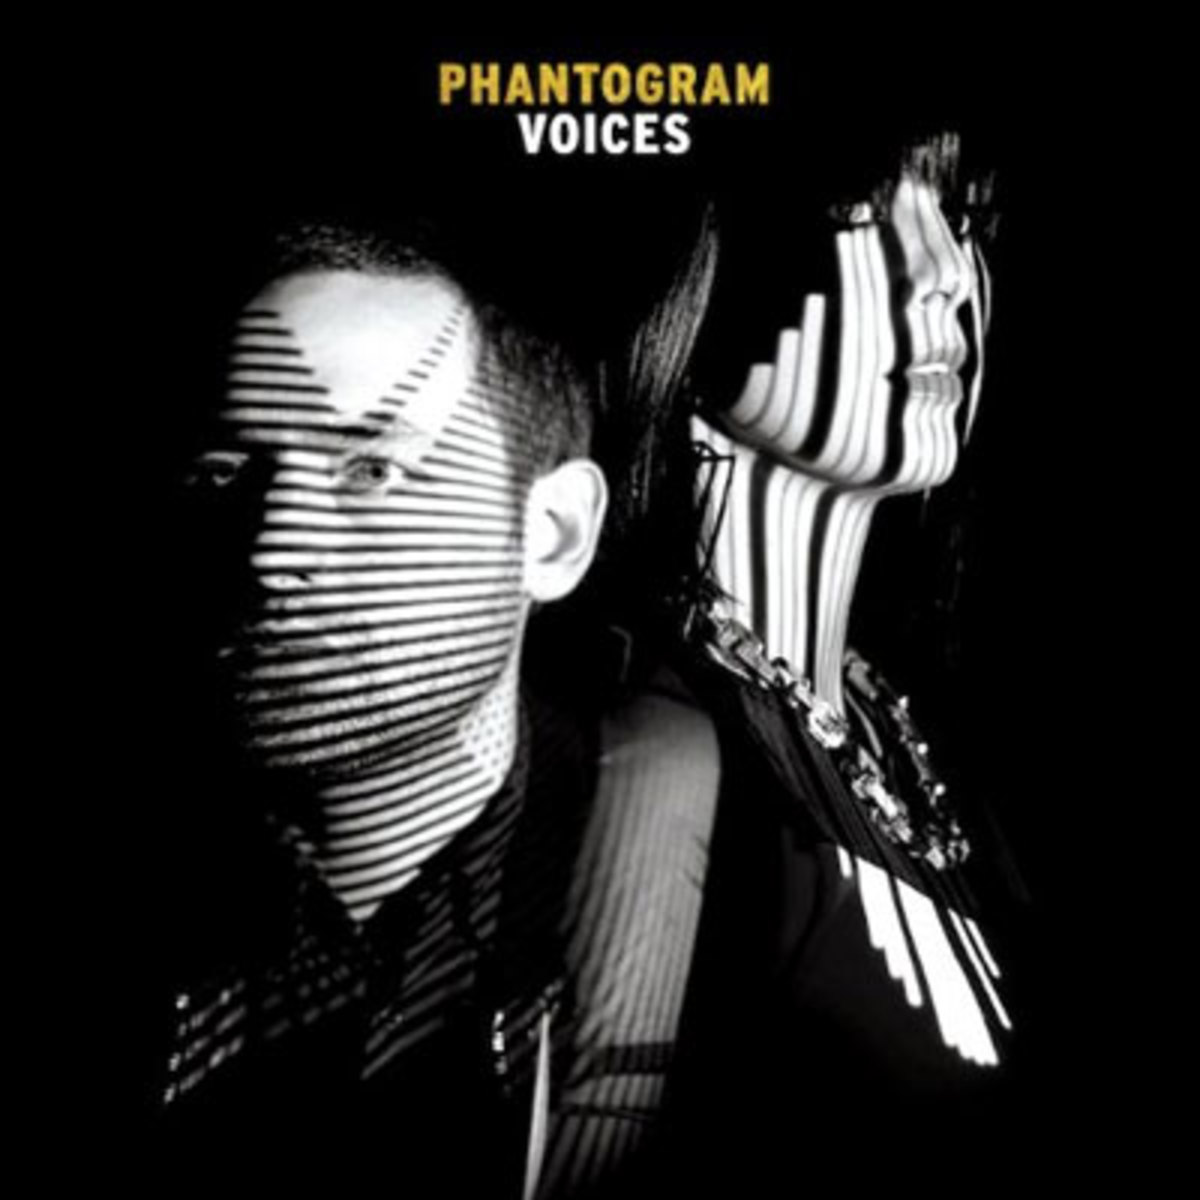 phantogram-voices.jpg